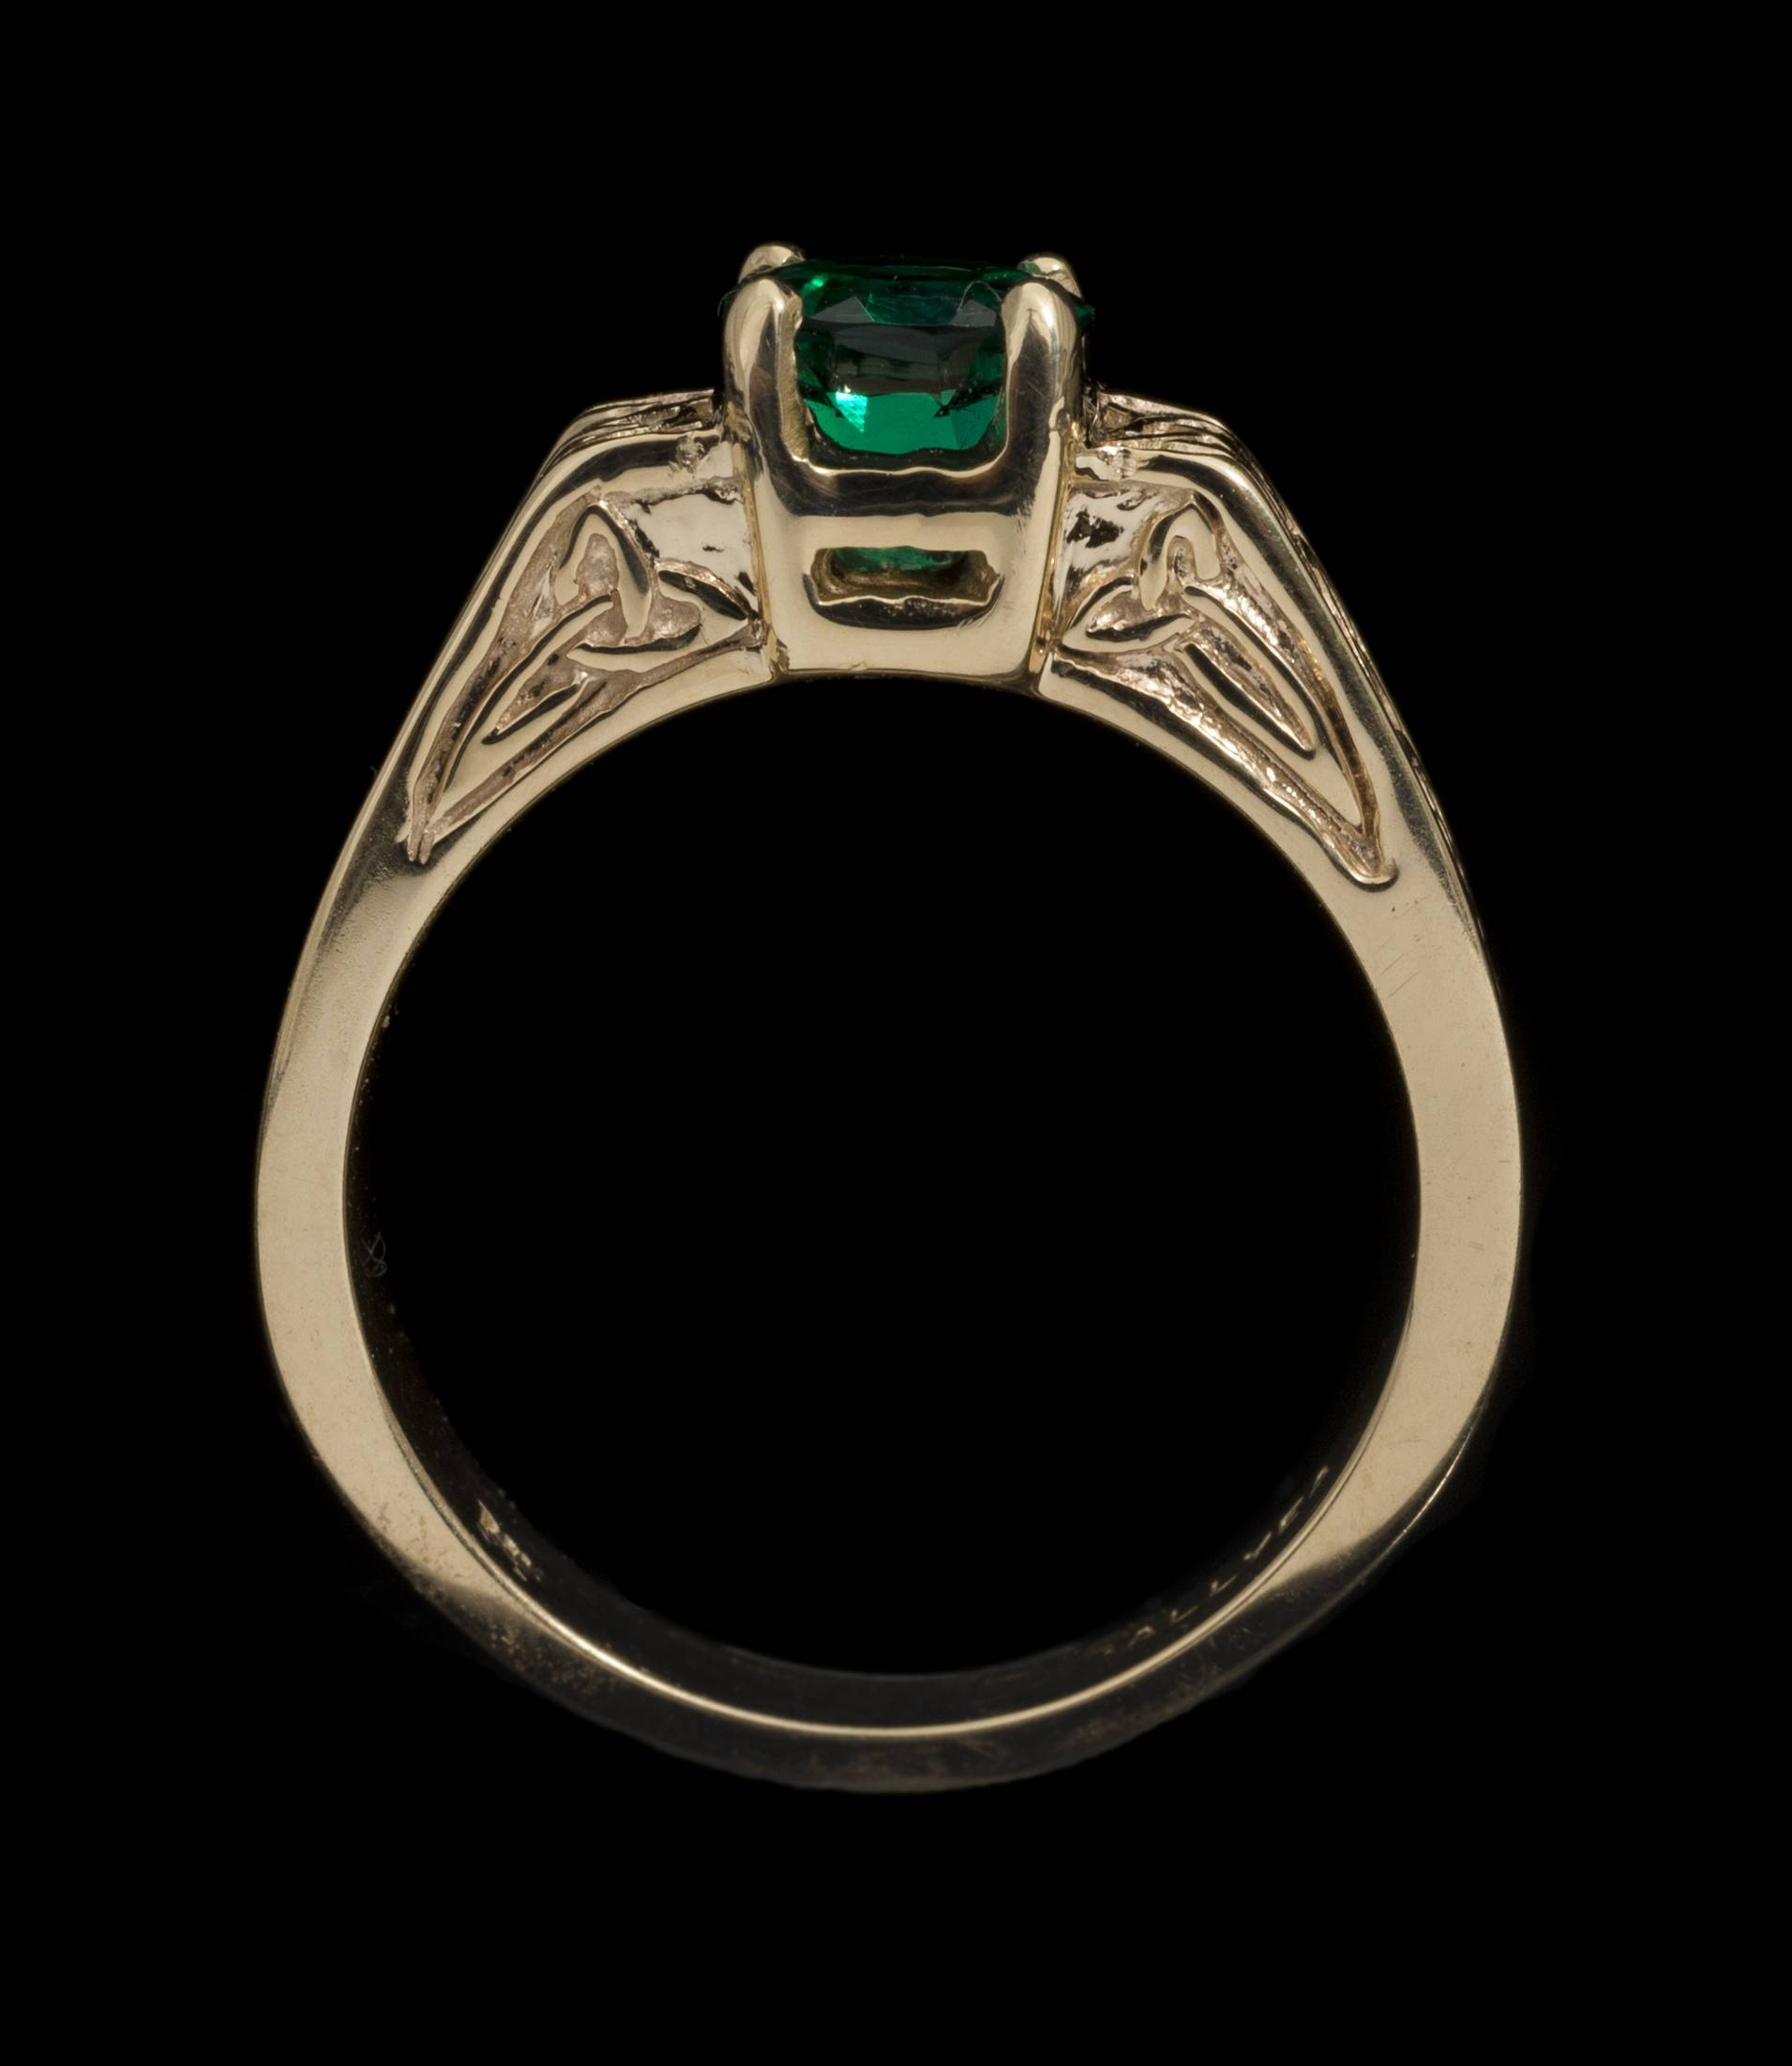 14Kt Chatham Emerald Celtic Knot Ring Intended For Emerald Celtic Engagement Rings (View 1 of 15)